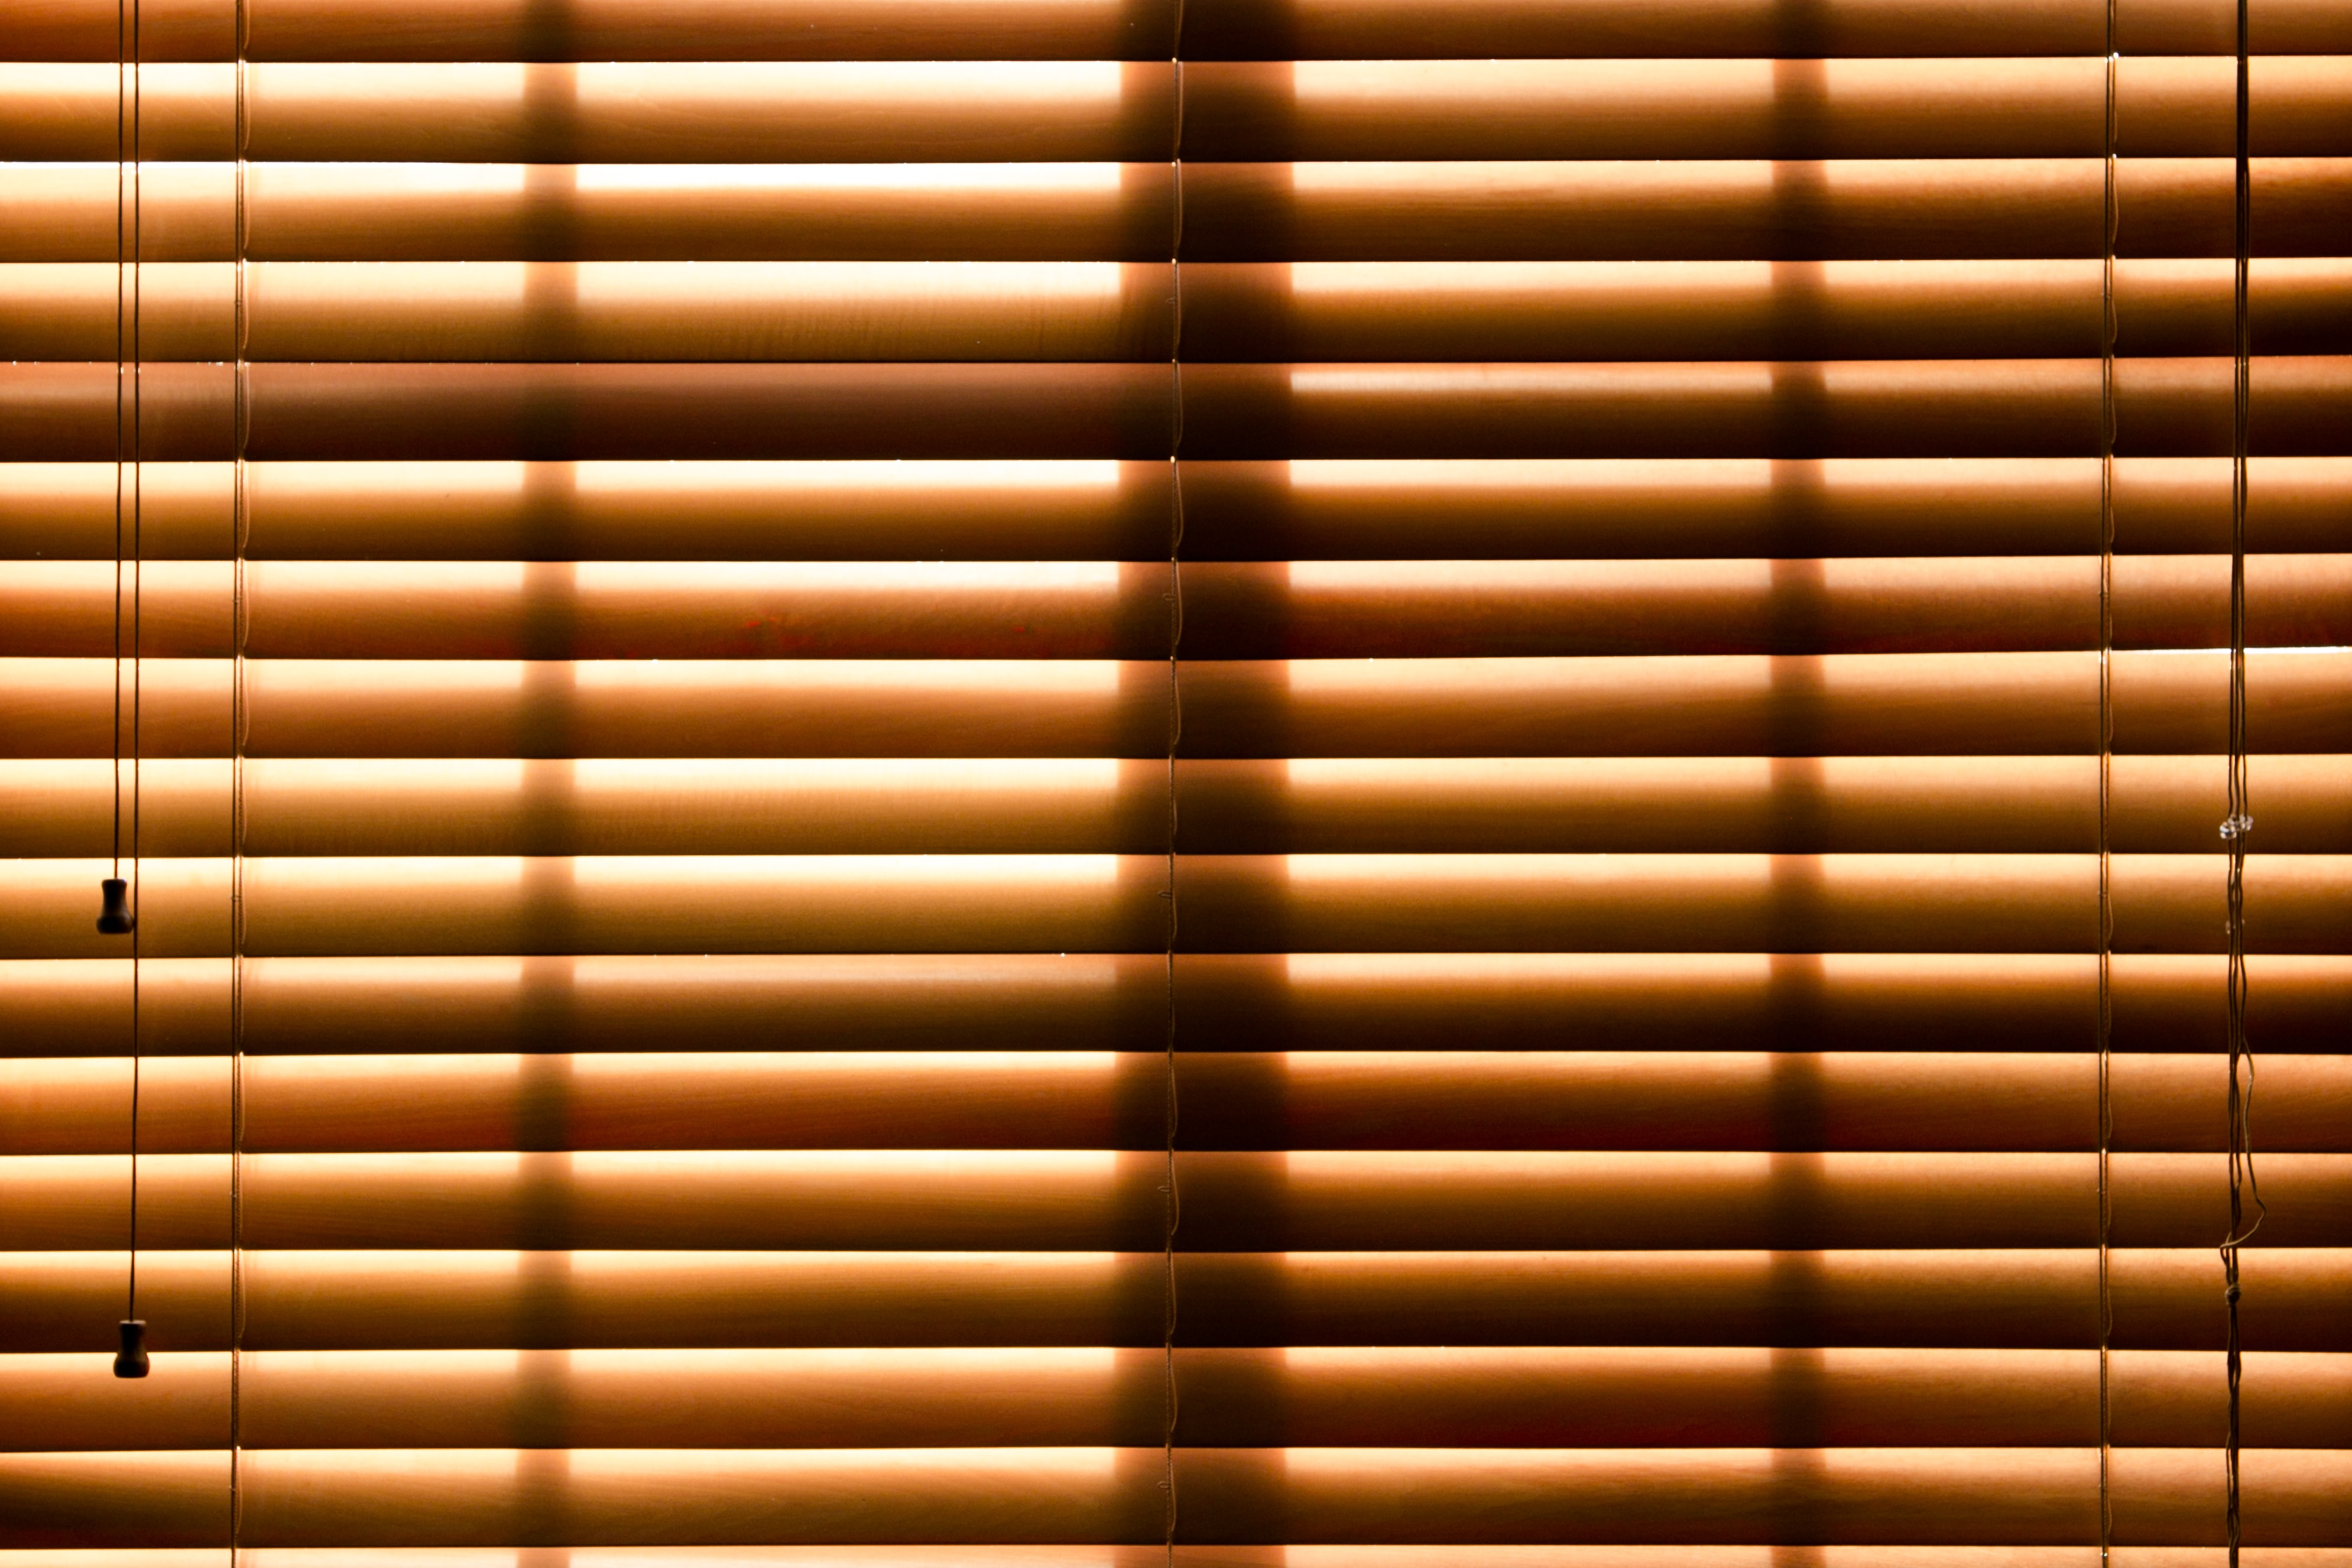 brown closed window blinds